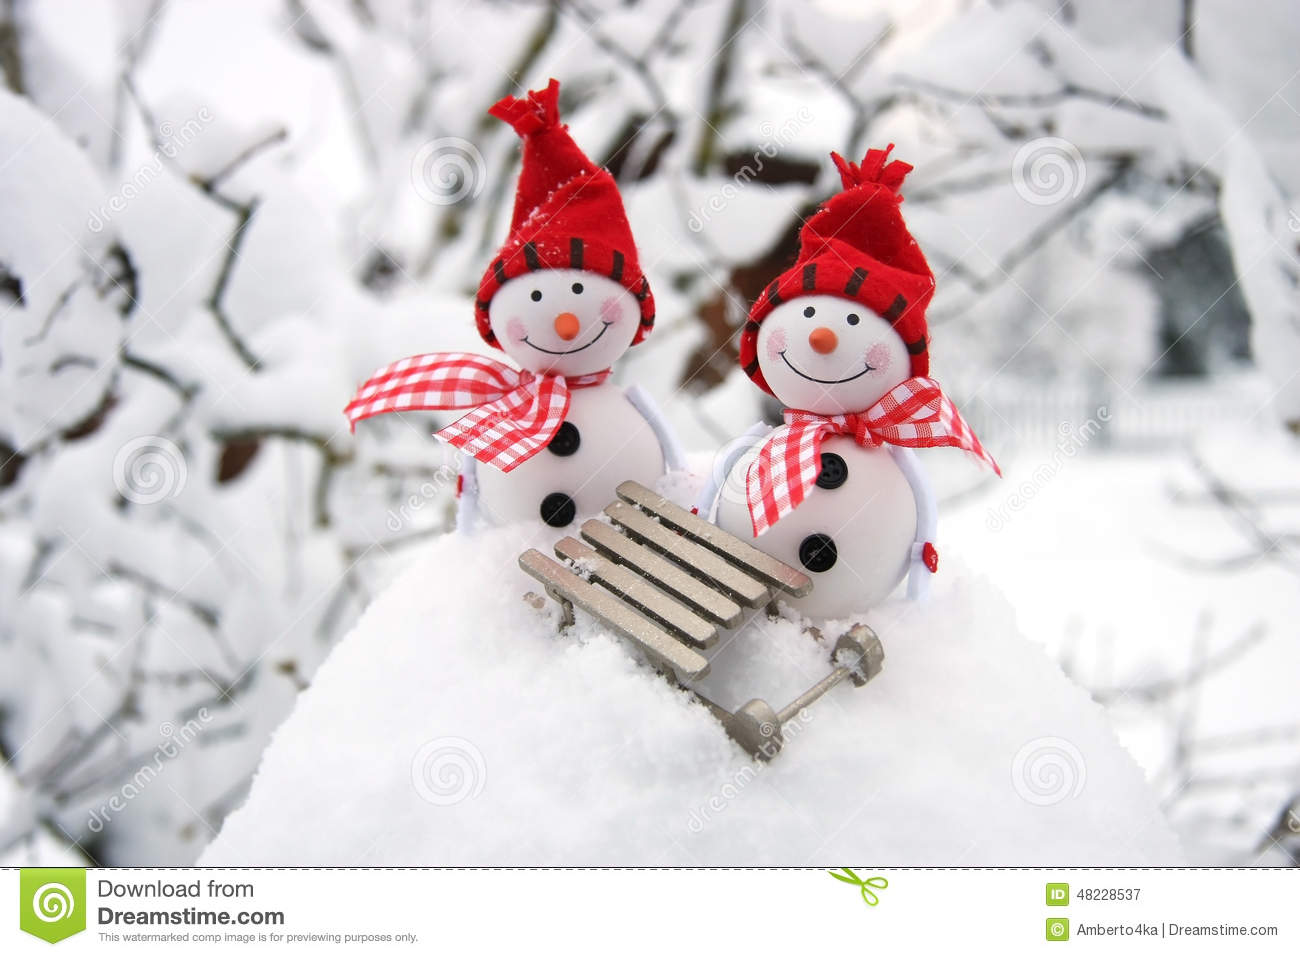 Two Smiling Snowmen Friends In The Snow Stock Photo